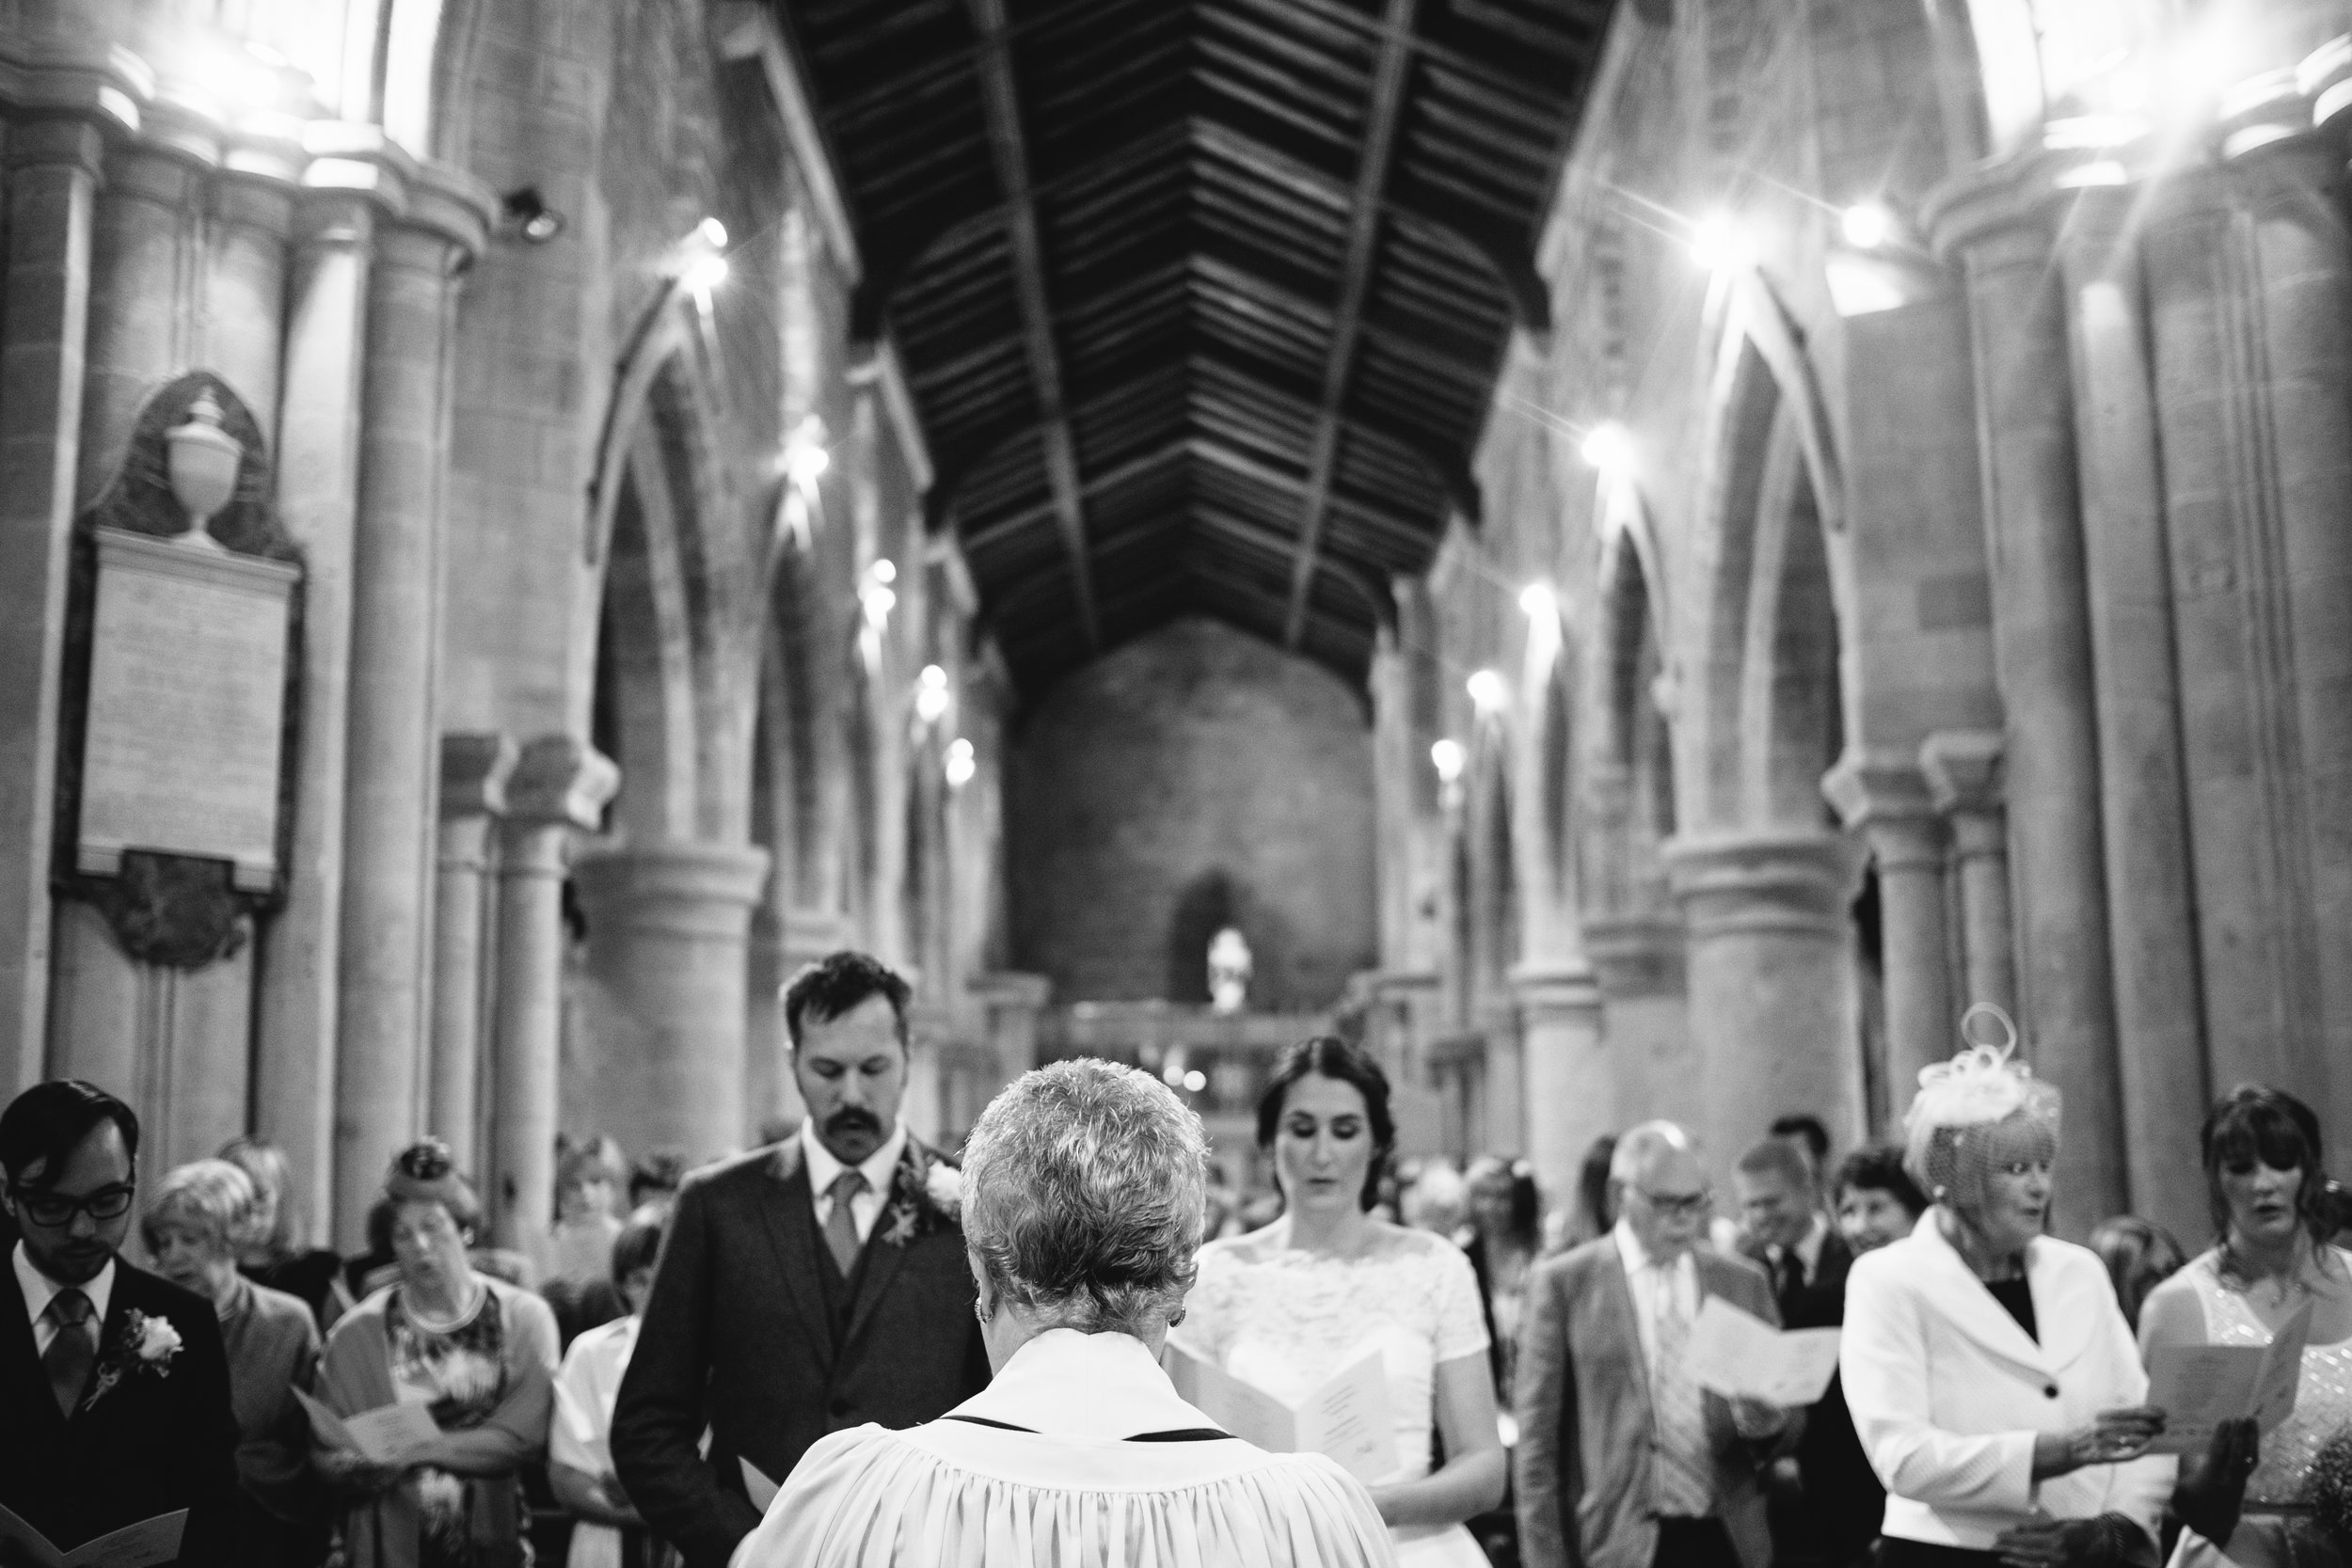 Black and white photo of the celebrant conducting the wedding in church